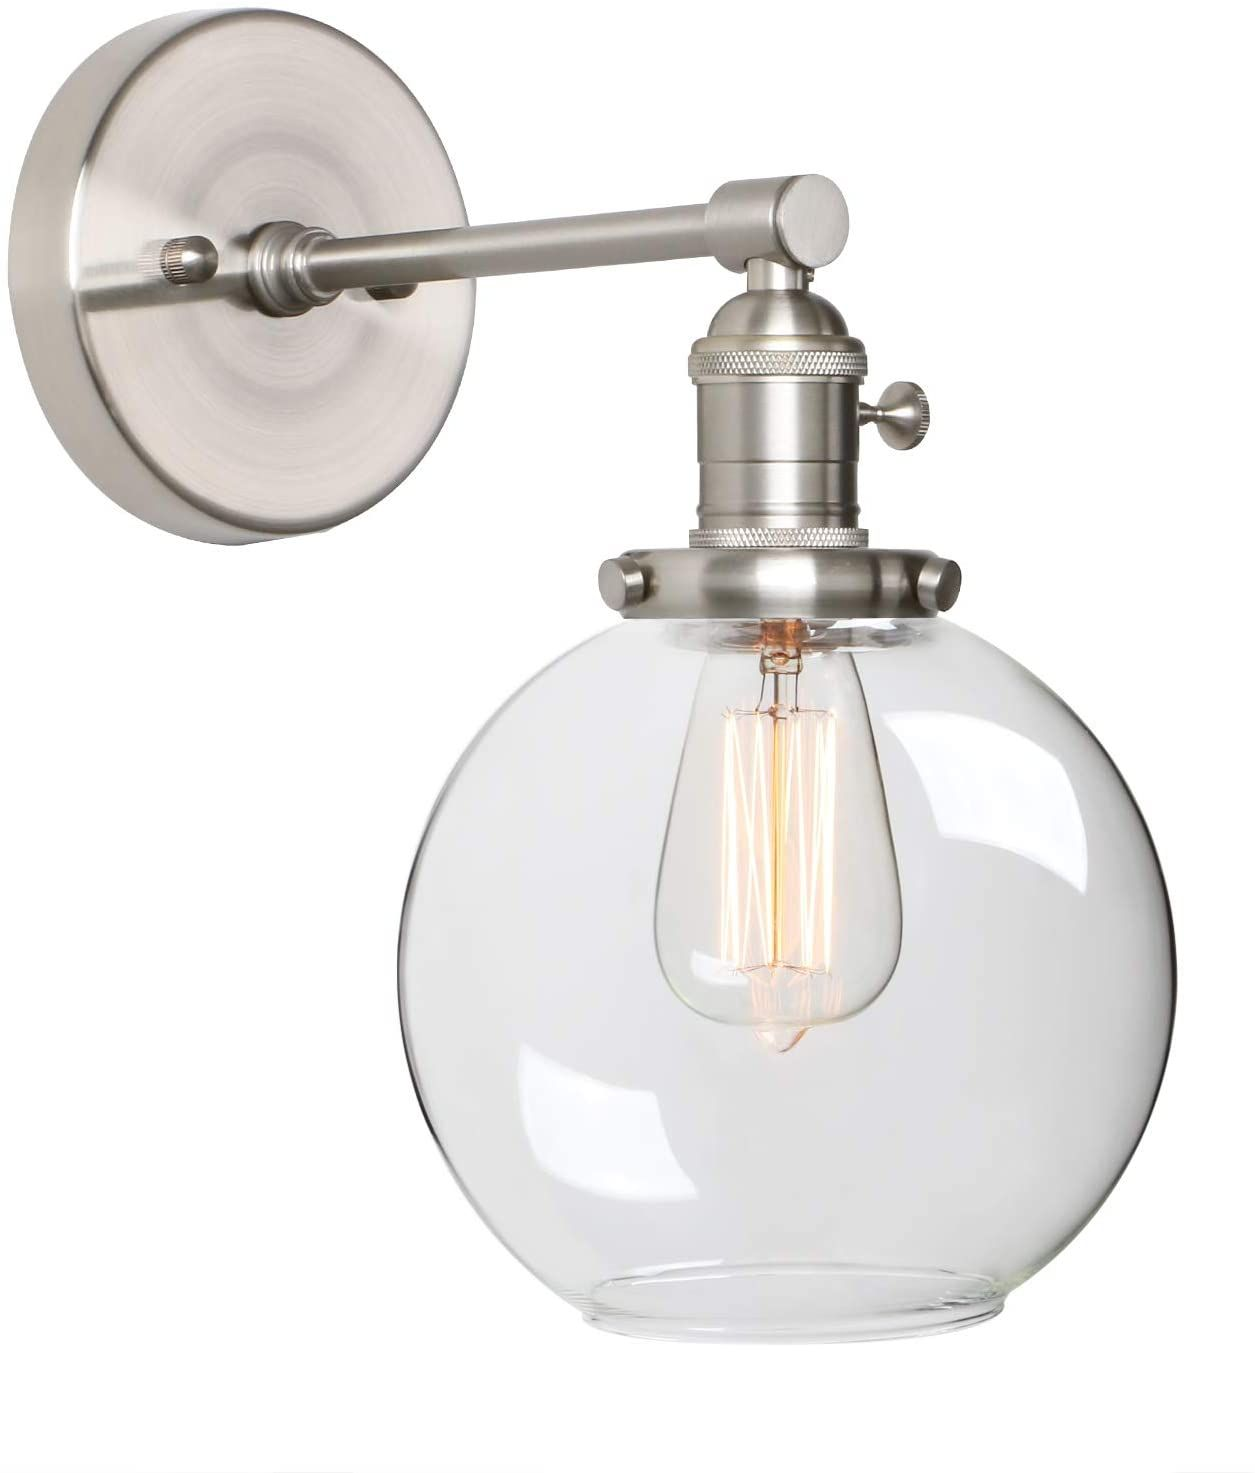 Phansthy Globe Wall Sconce Brushed Nickel Finished 1 Light Bathroom Vanity Light With 7 87 Inches Cl In 2020 Bathroom Vanity Lighting Vanity Lighting Bathroom Lighting